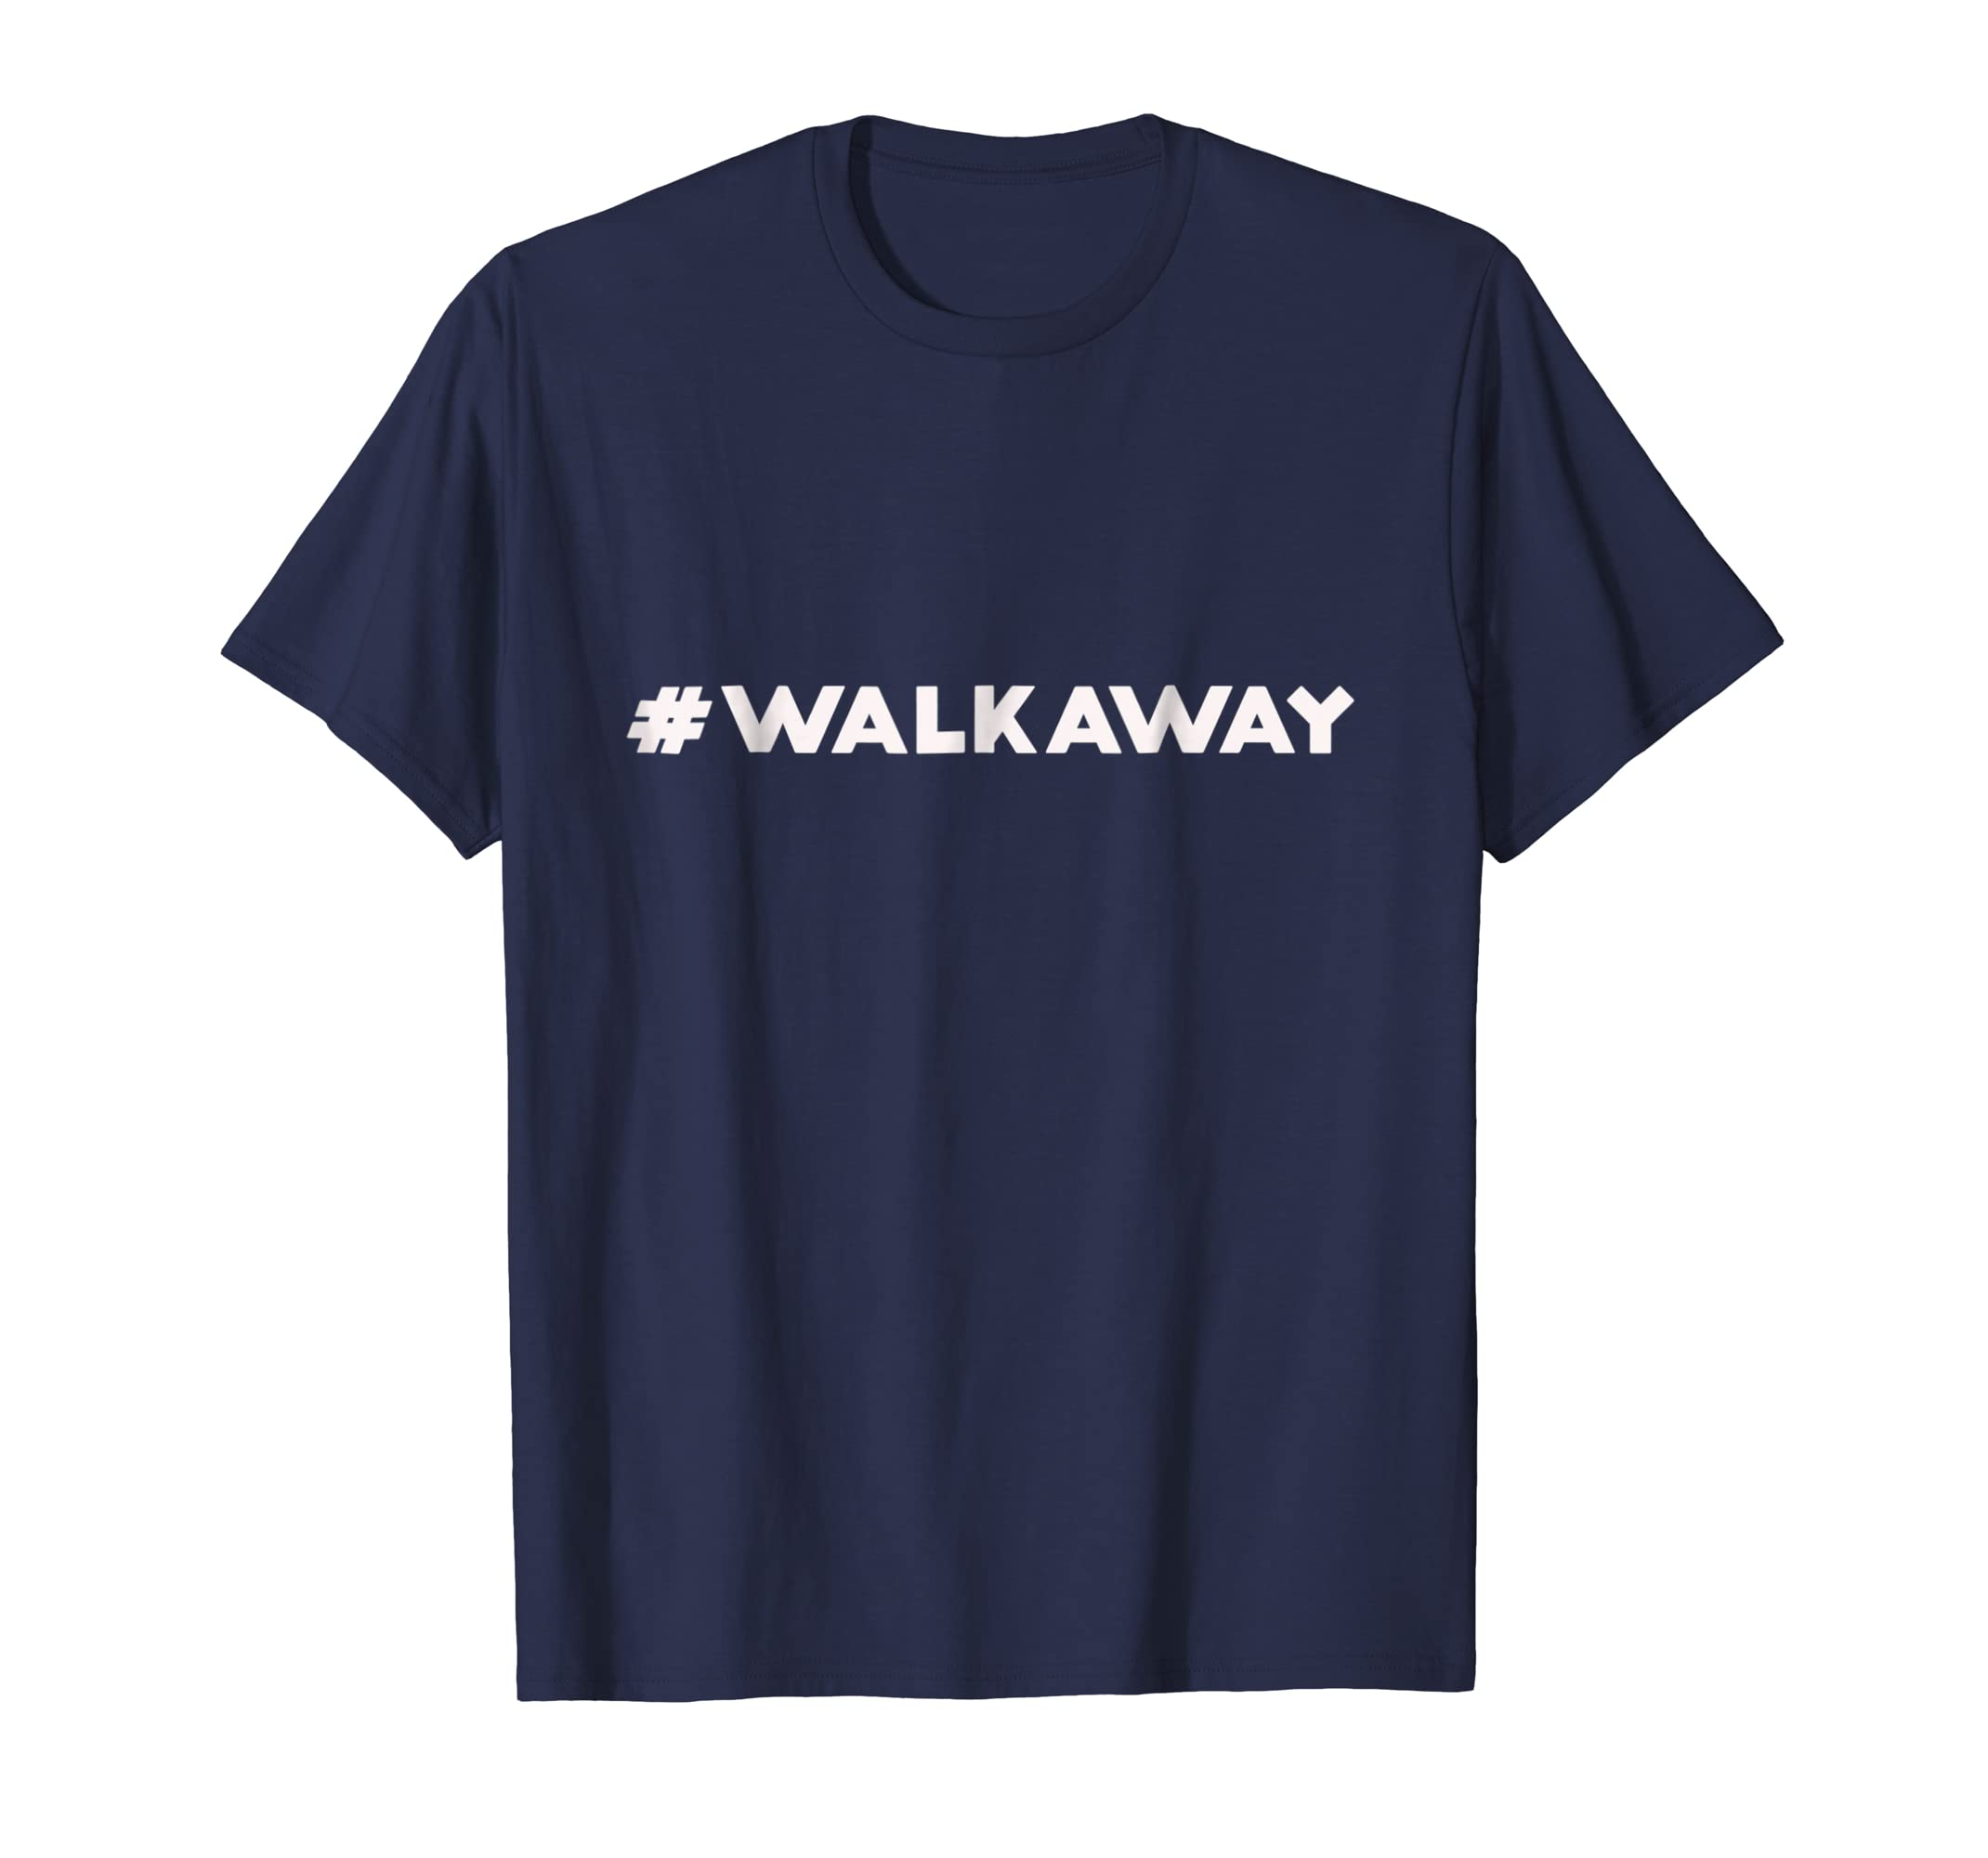 #WALKAWAY Hashtag Walk Away Funny Political Movement T Shirt